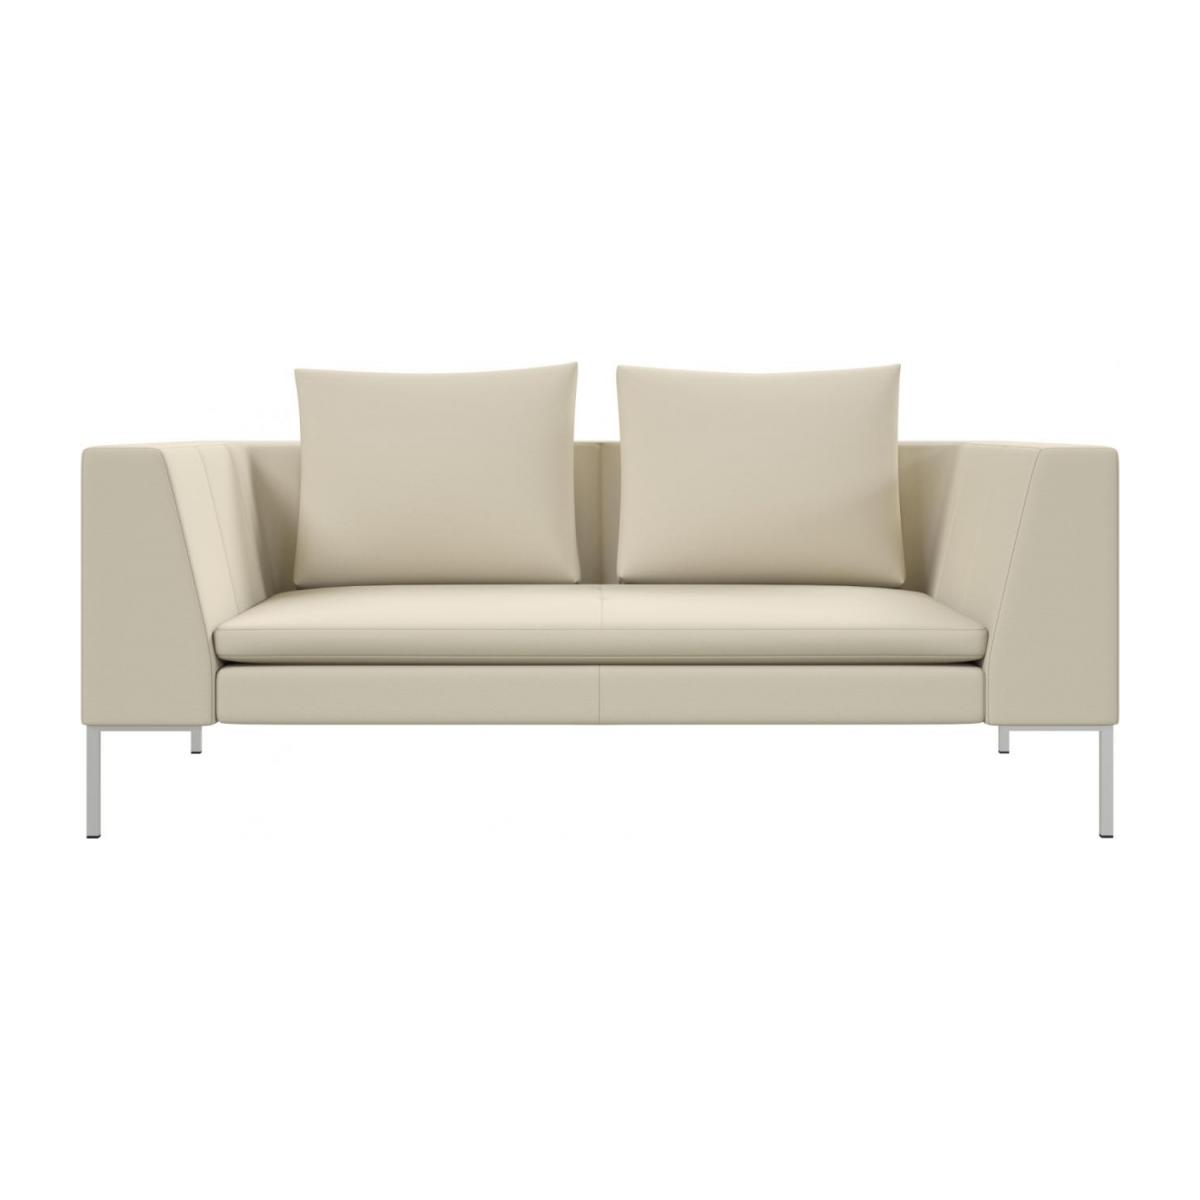 2 seater sofa in Savoy semi-aniline leather, off white n°2